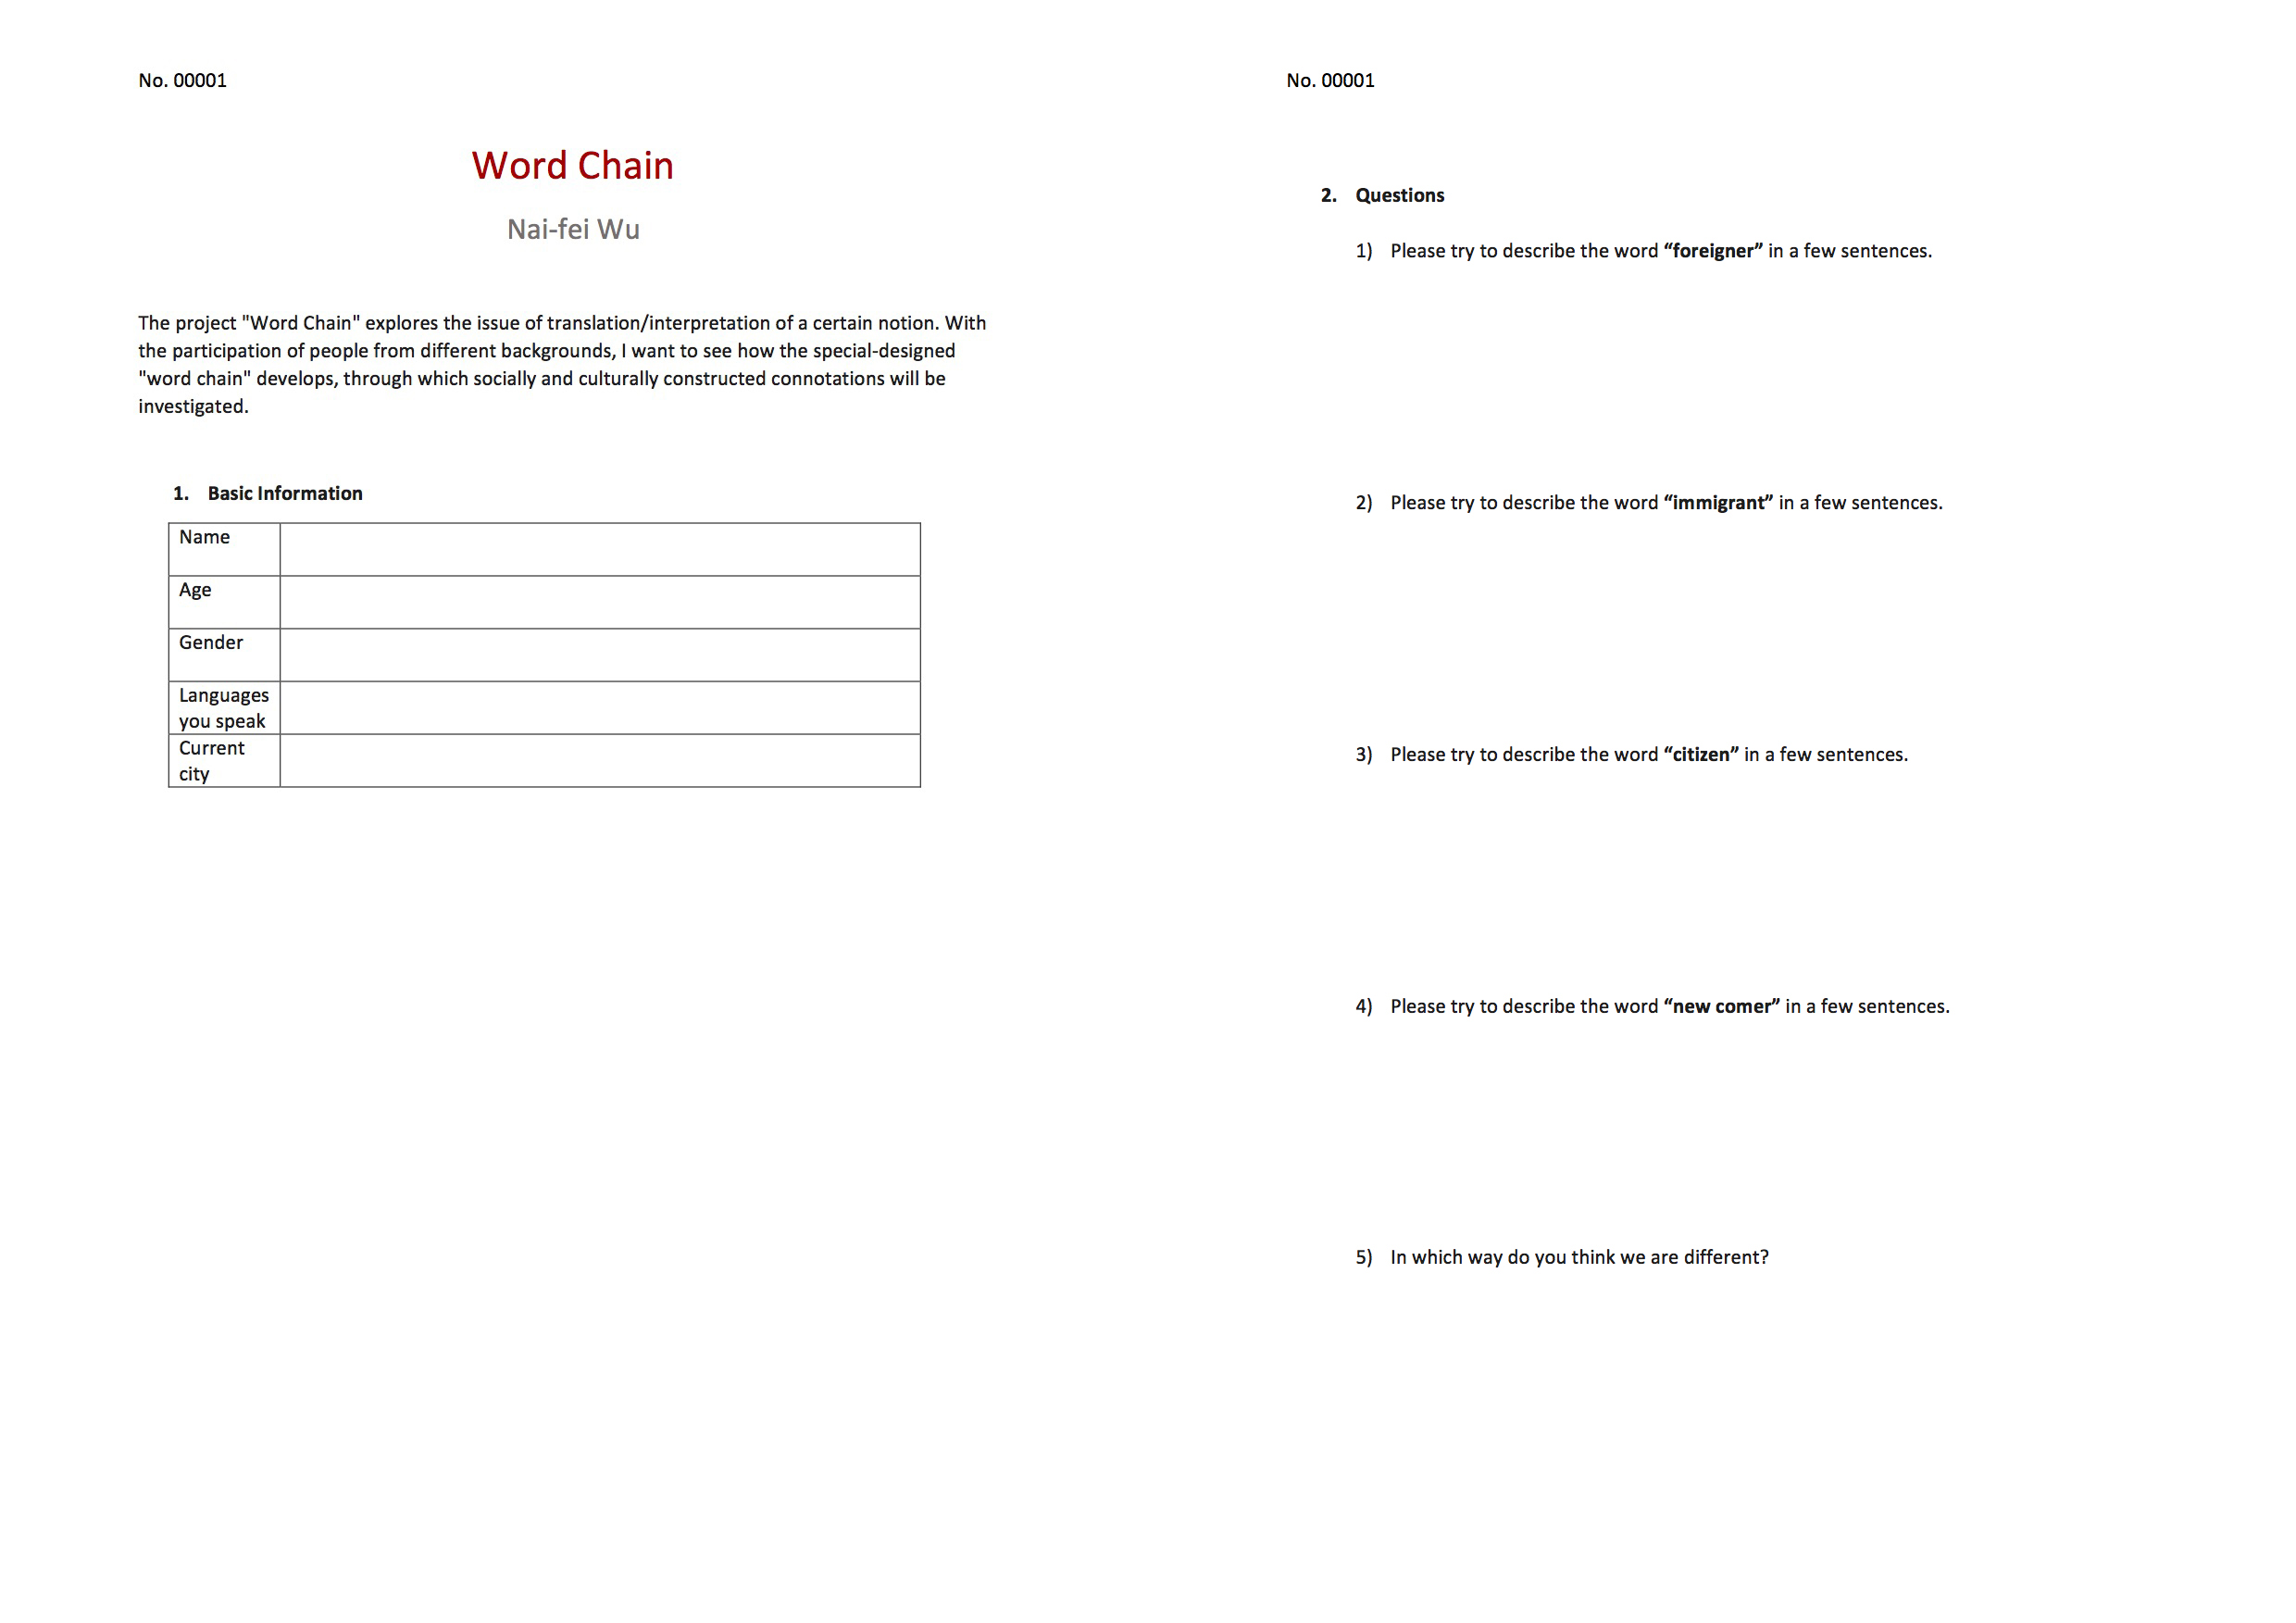 The questionnaire for the participants to fill in.